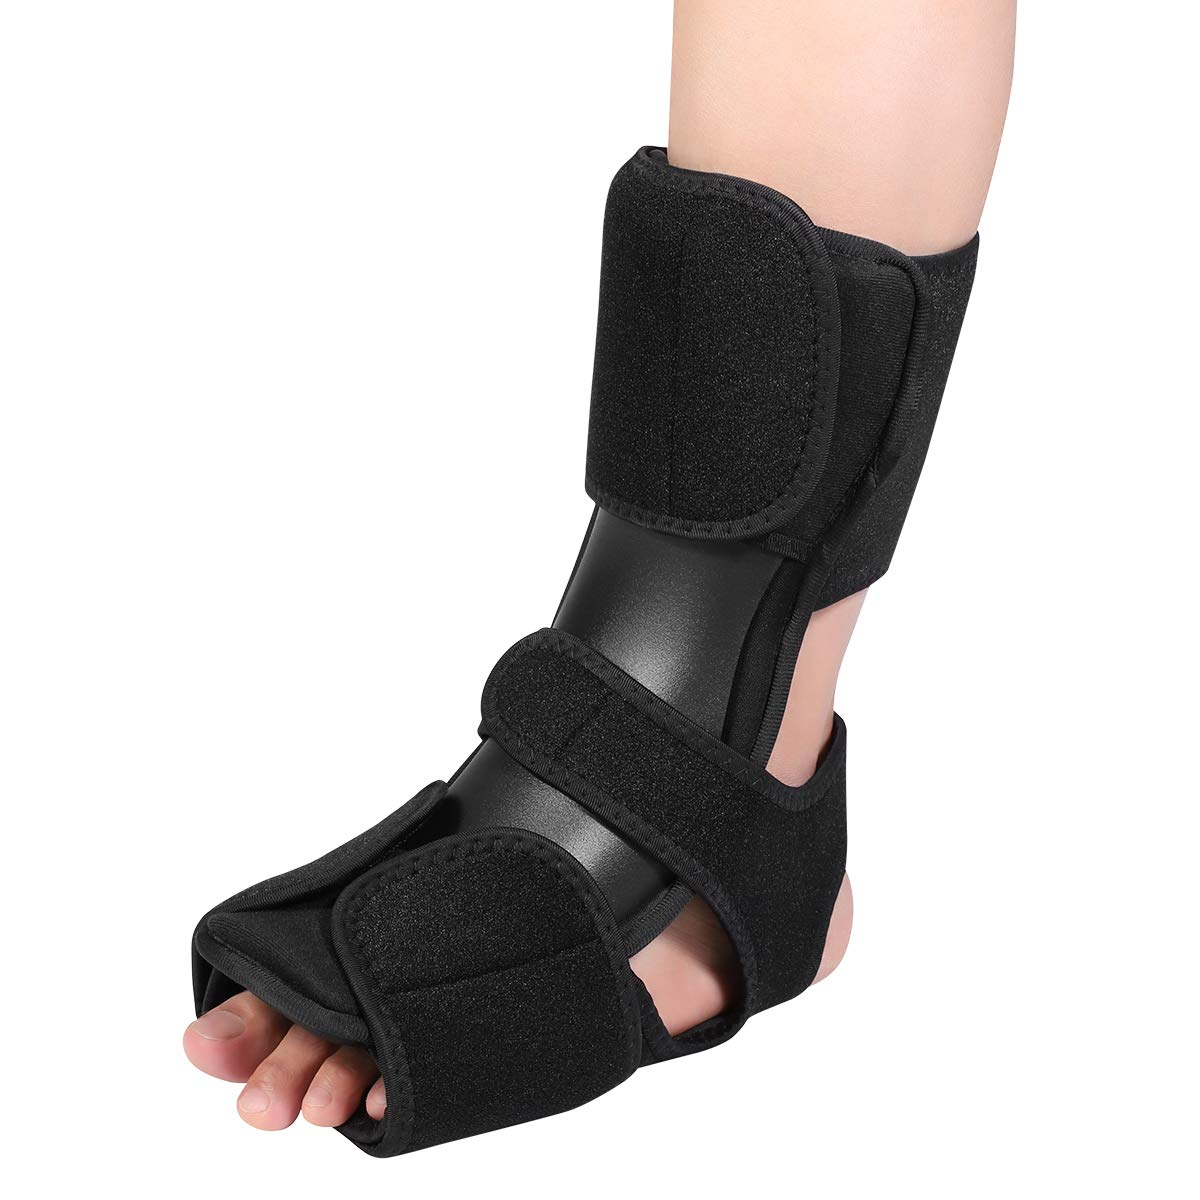 Healifty Plantar Fasciitis Night Splint - Foot Support Brace Adjustable Foot Stabilizer, Orthotic Sleeping Immobilizer, Arch Support/Ankle Night Brace